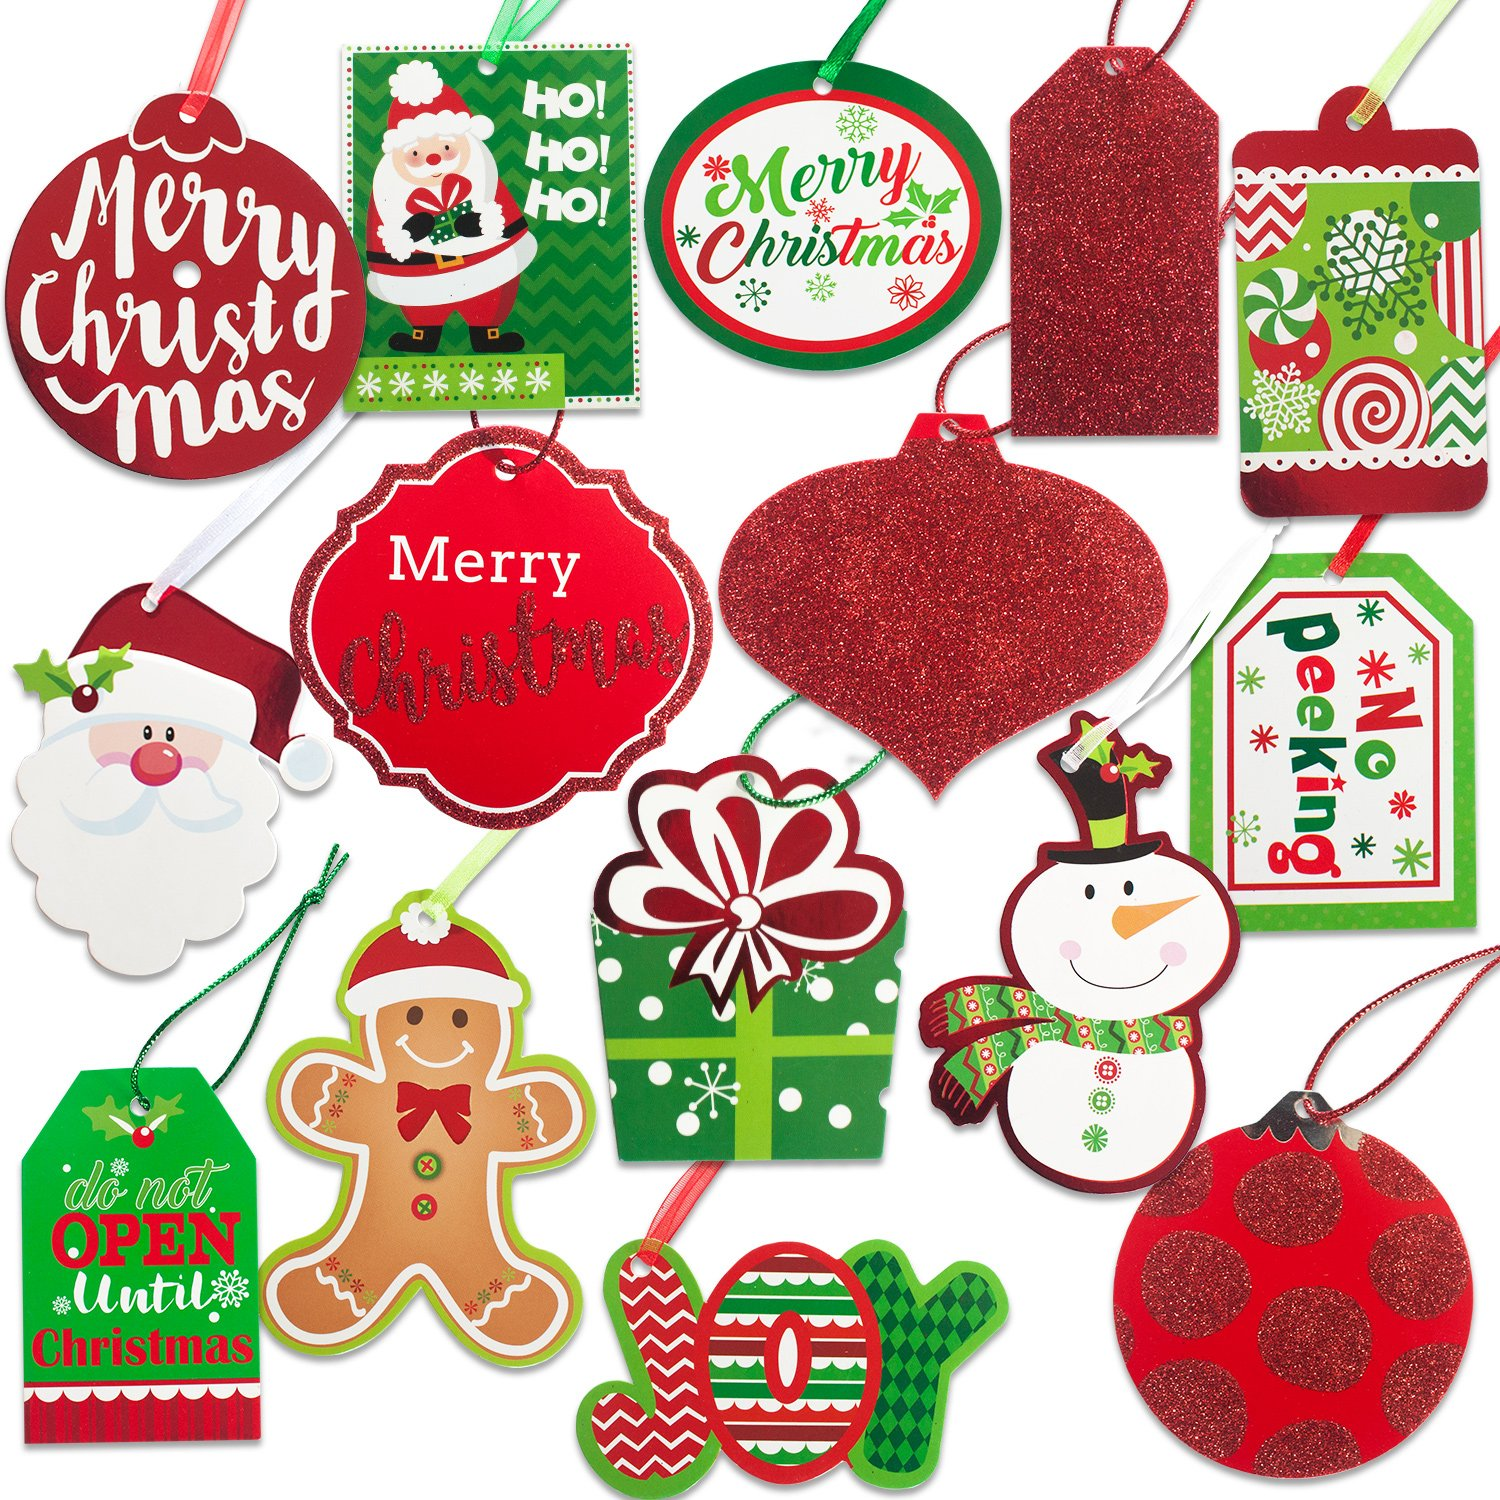 Amazon.com: 100 Pack of Large Christmas Gift Tags in 10 Assorted ...